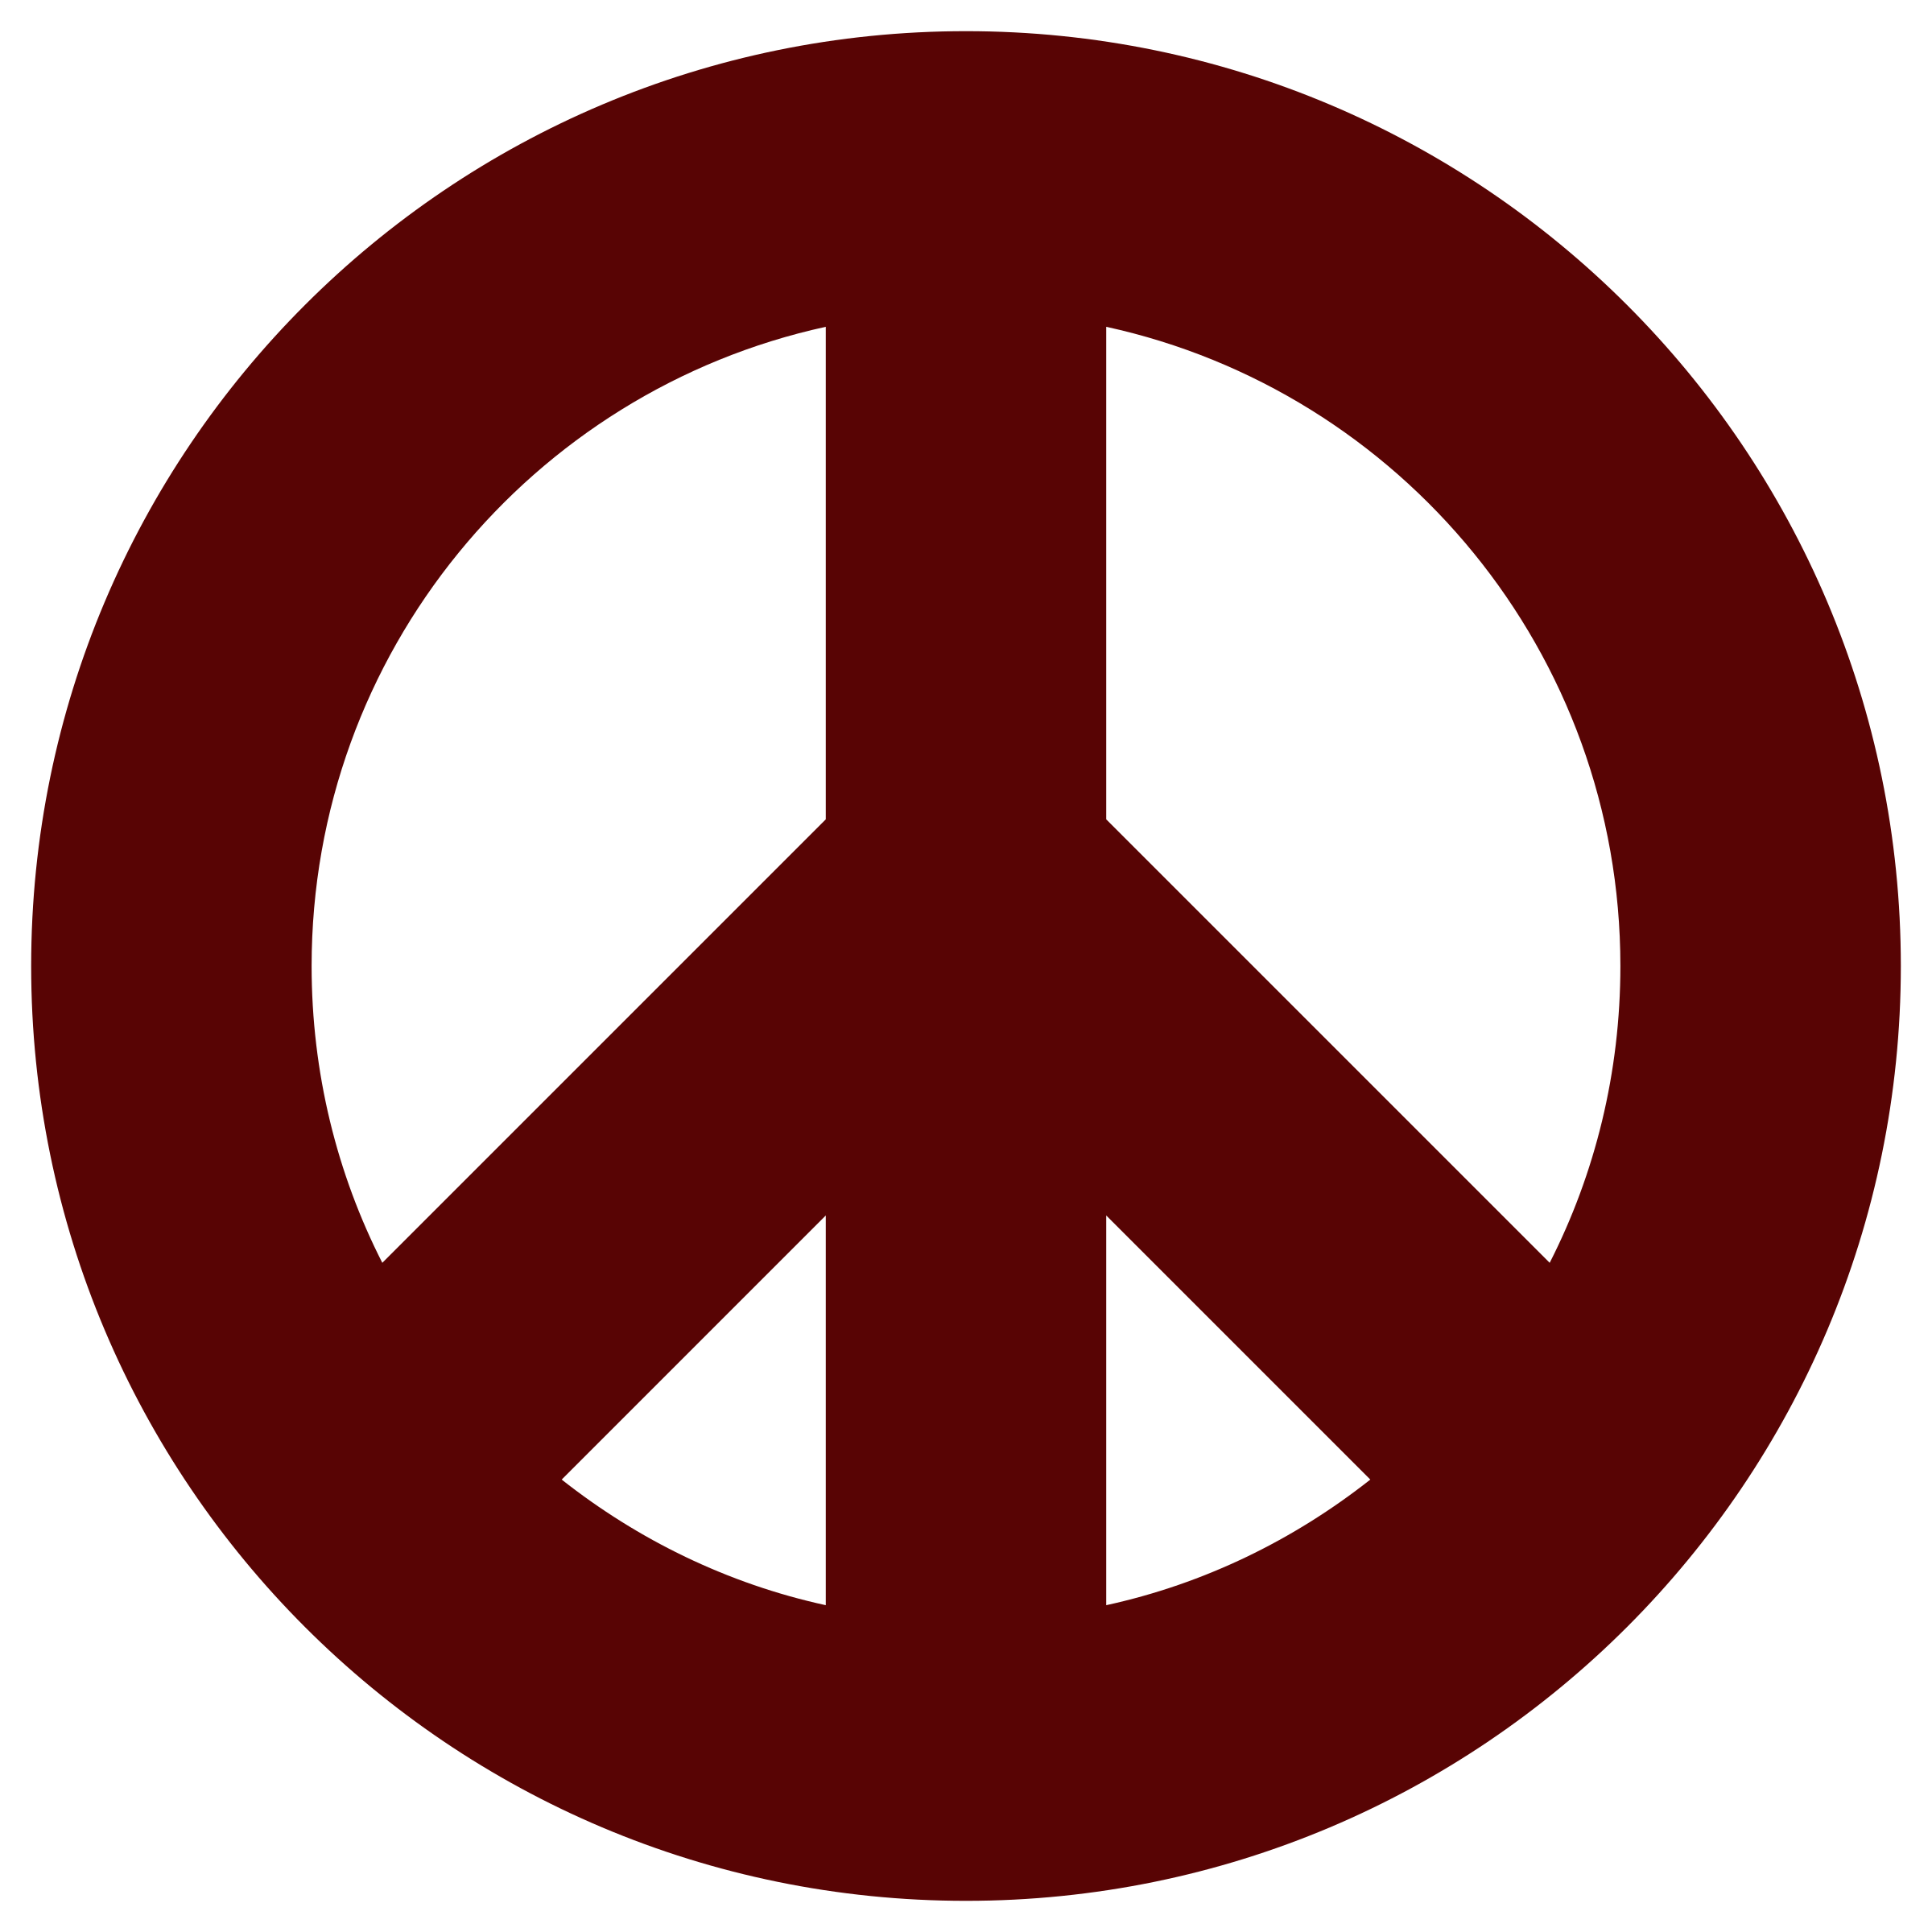 Peace clipart independence day. Sign pencil and in